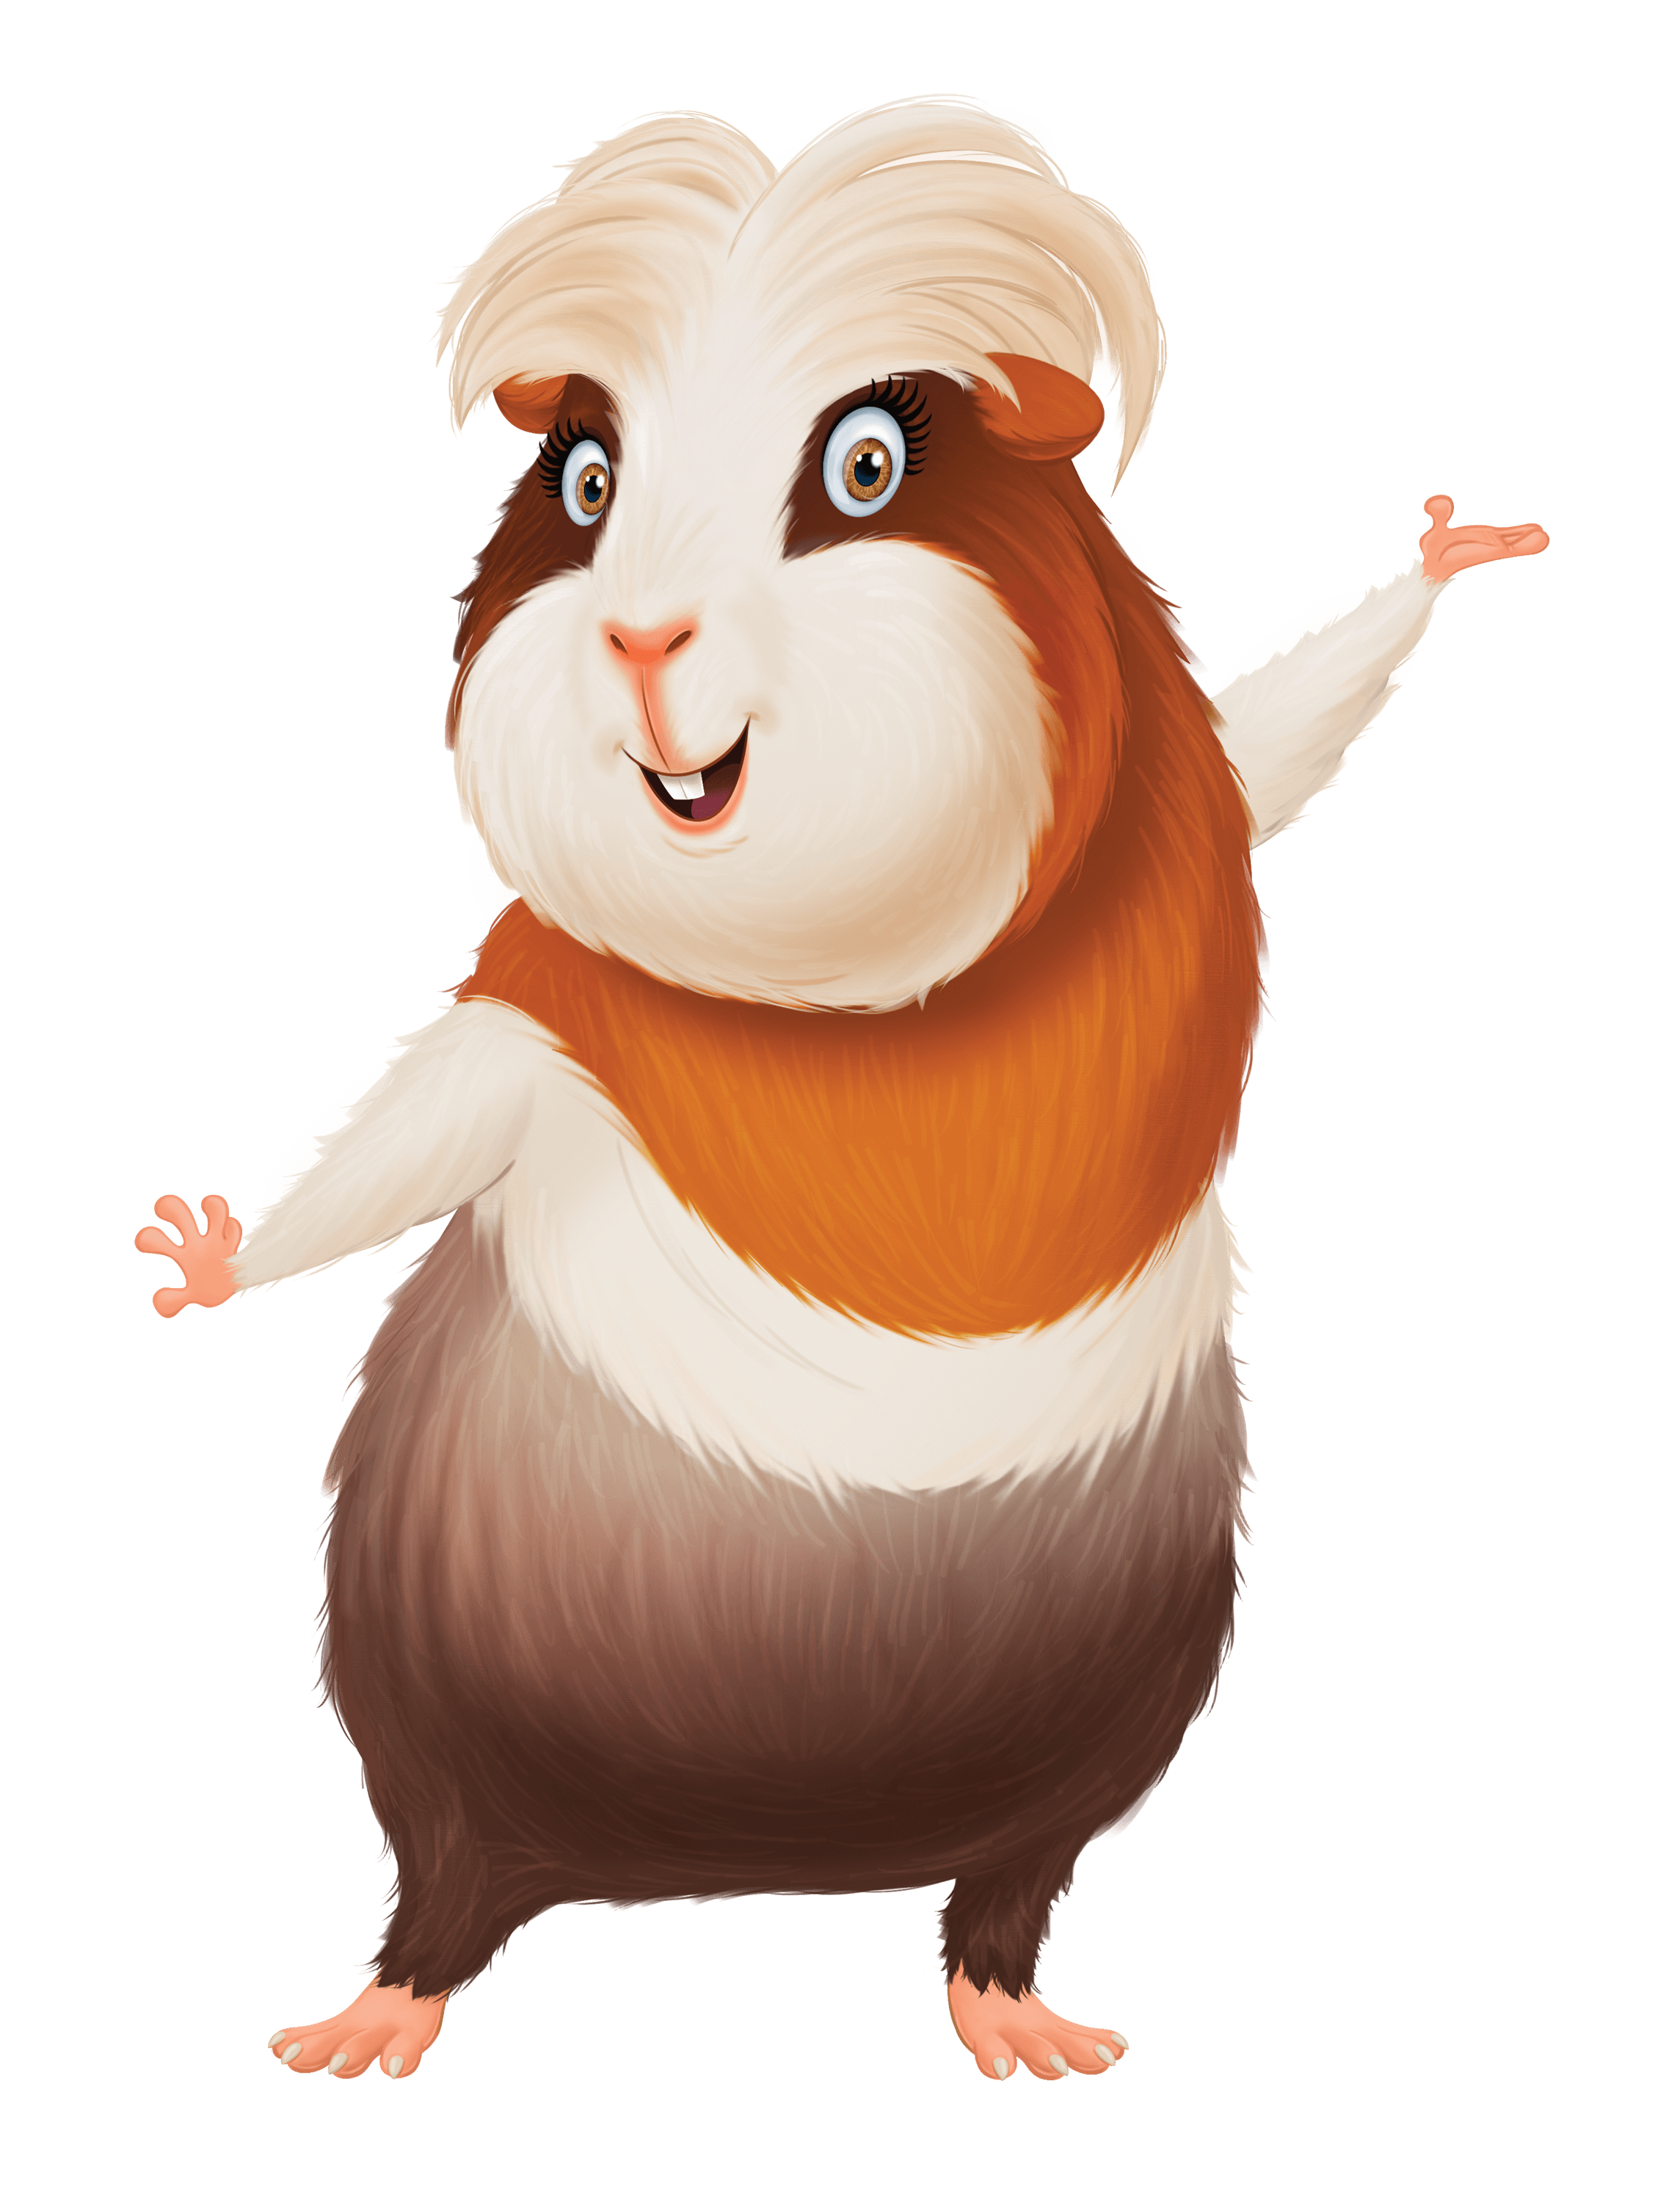 freeuse stock Image result for charo. Guinea clipart